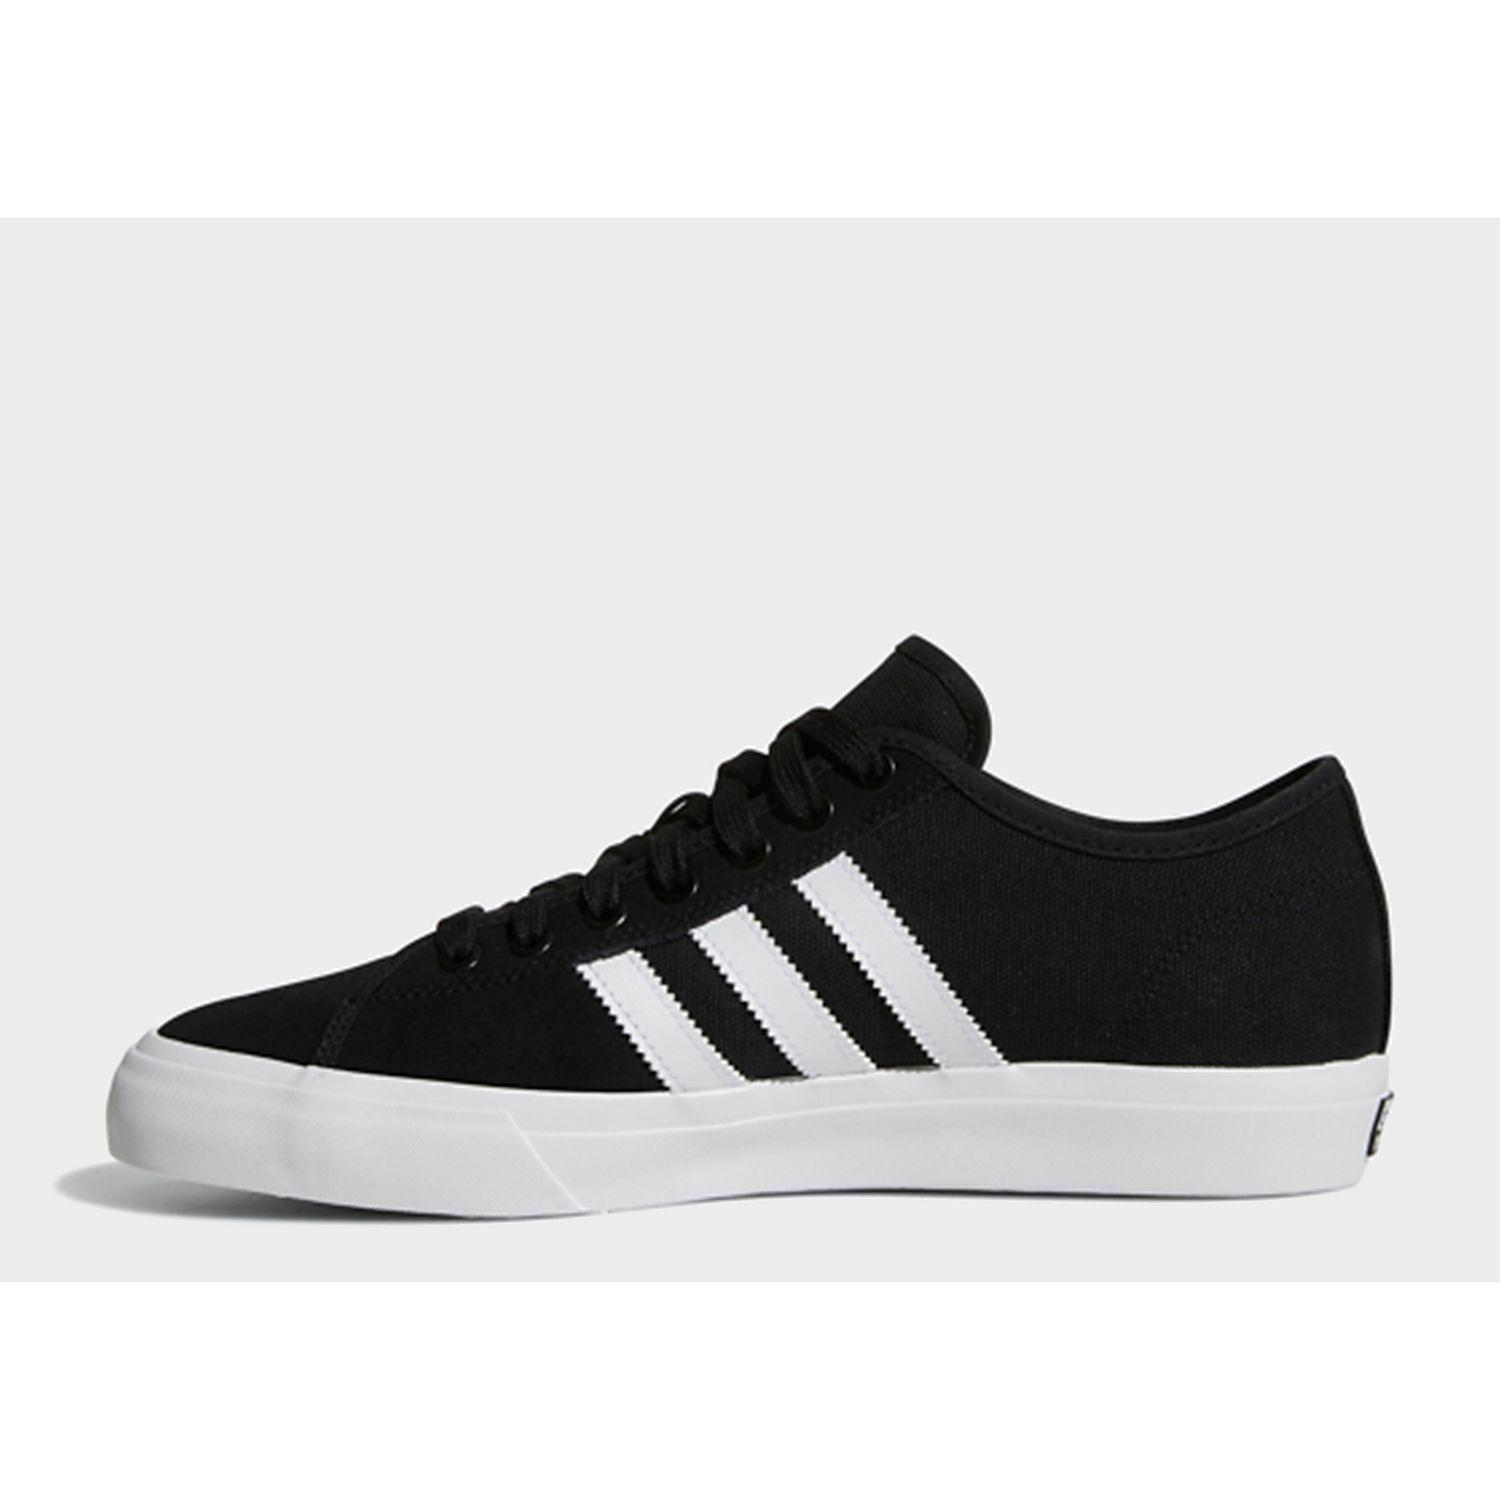 Lyst - adidas Matchcourt Rx Shoes in Black for Men f8fd94c18